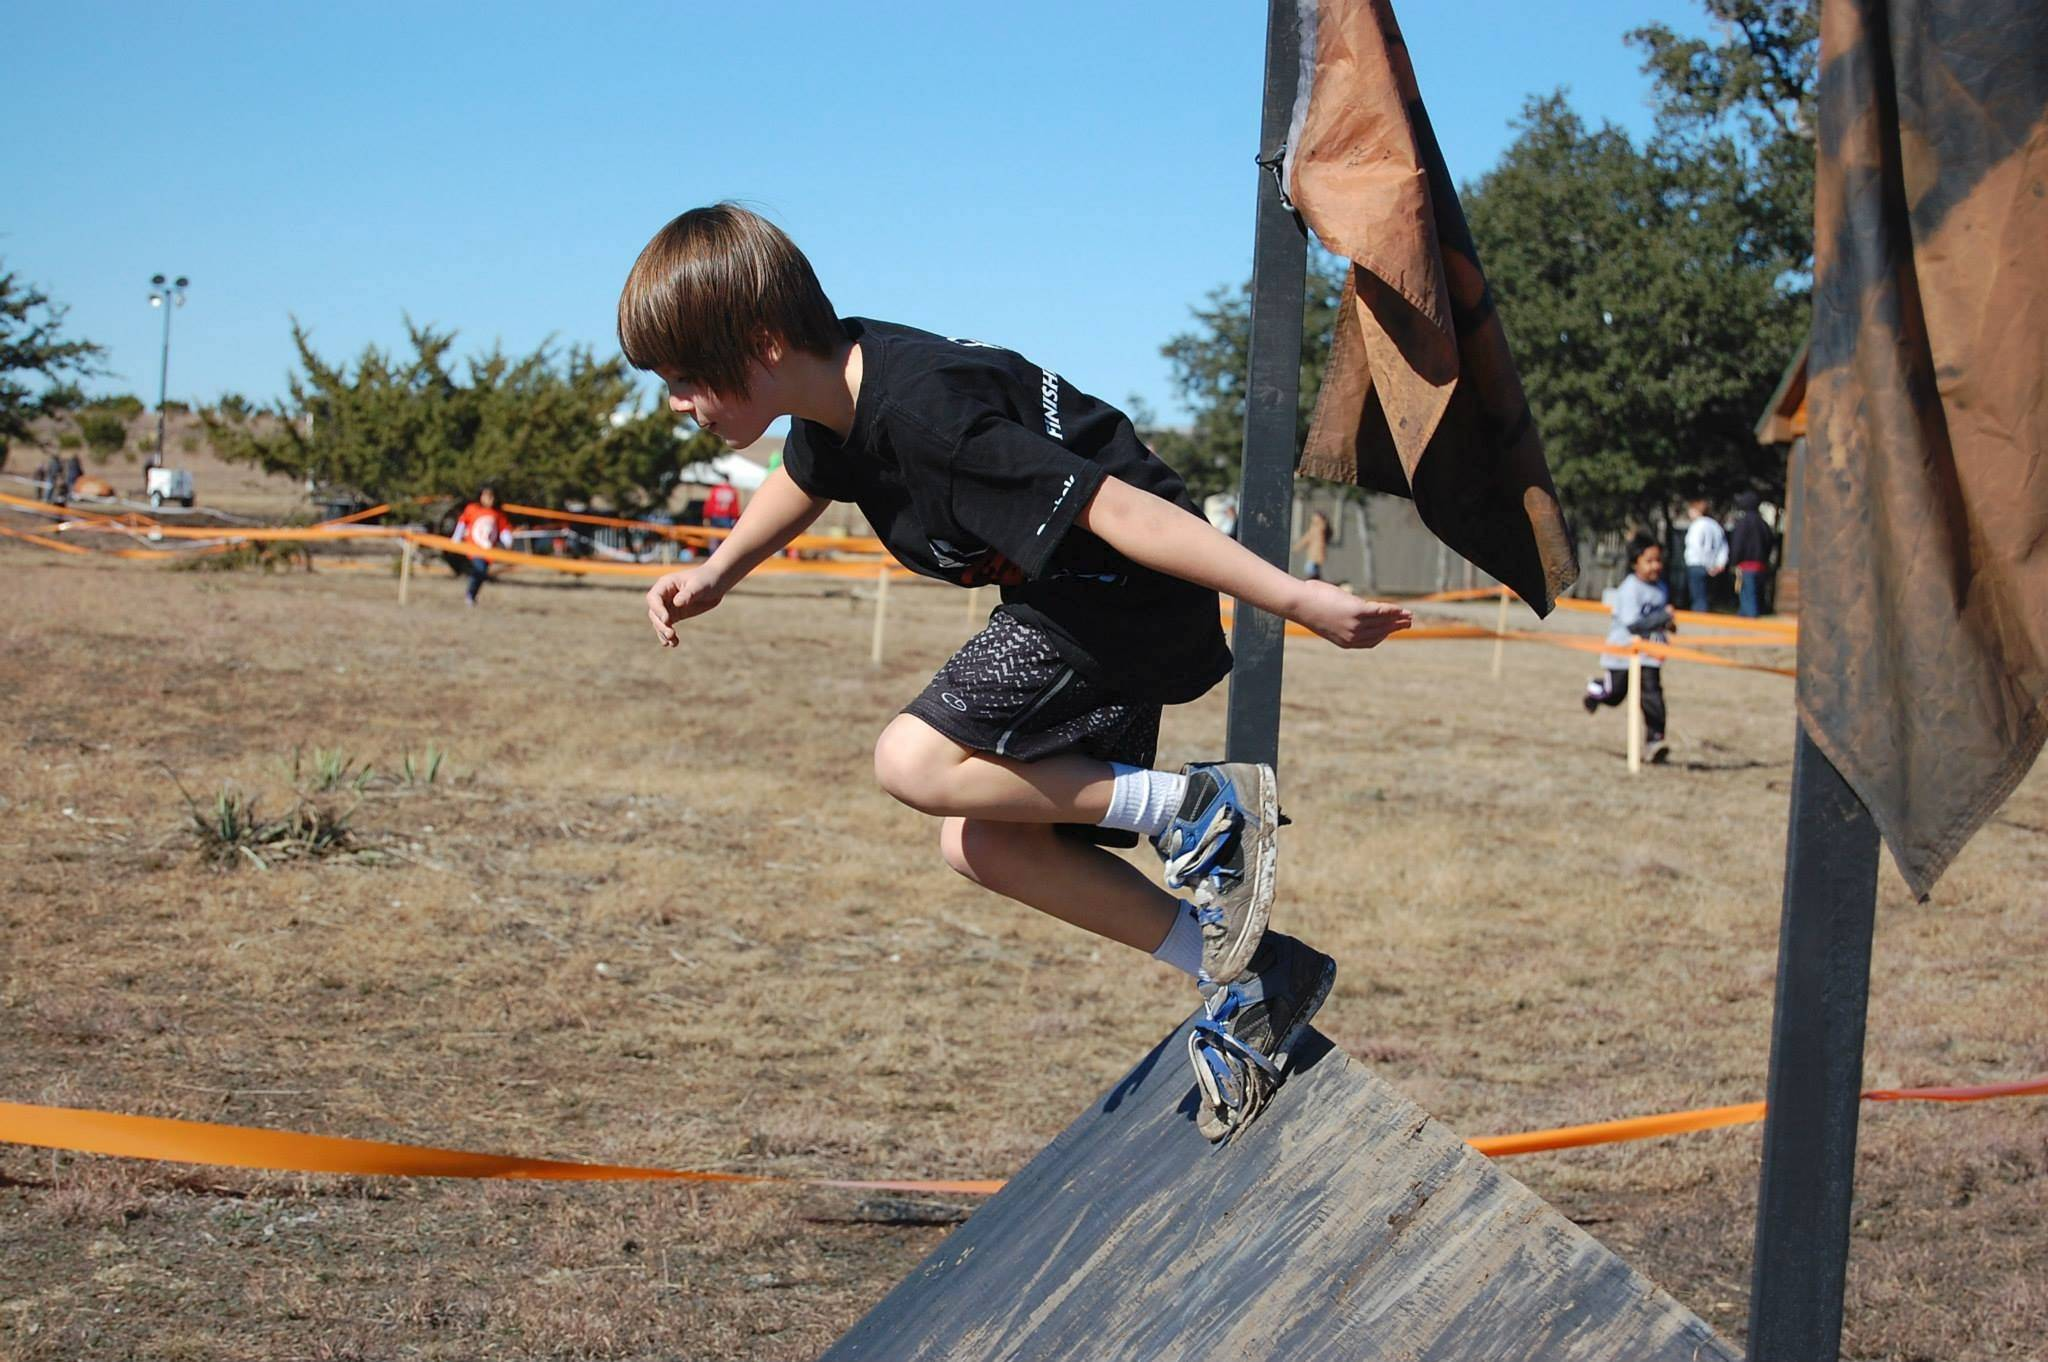 A new obstacle race coming Aug. 2 to Naperville will be just for kids -- including those with special needs -- teens and their parents. The course will be under the umbrella of the popular Spartan Race series, which includes an event each year in Marseilles.